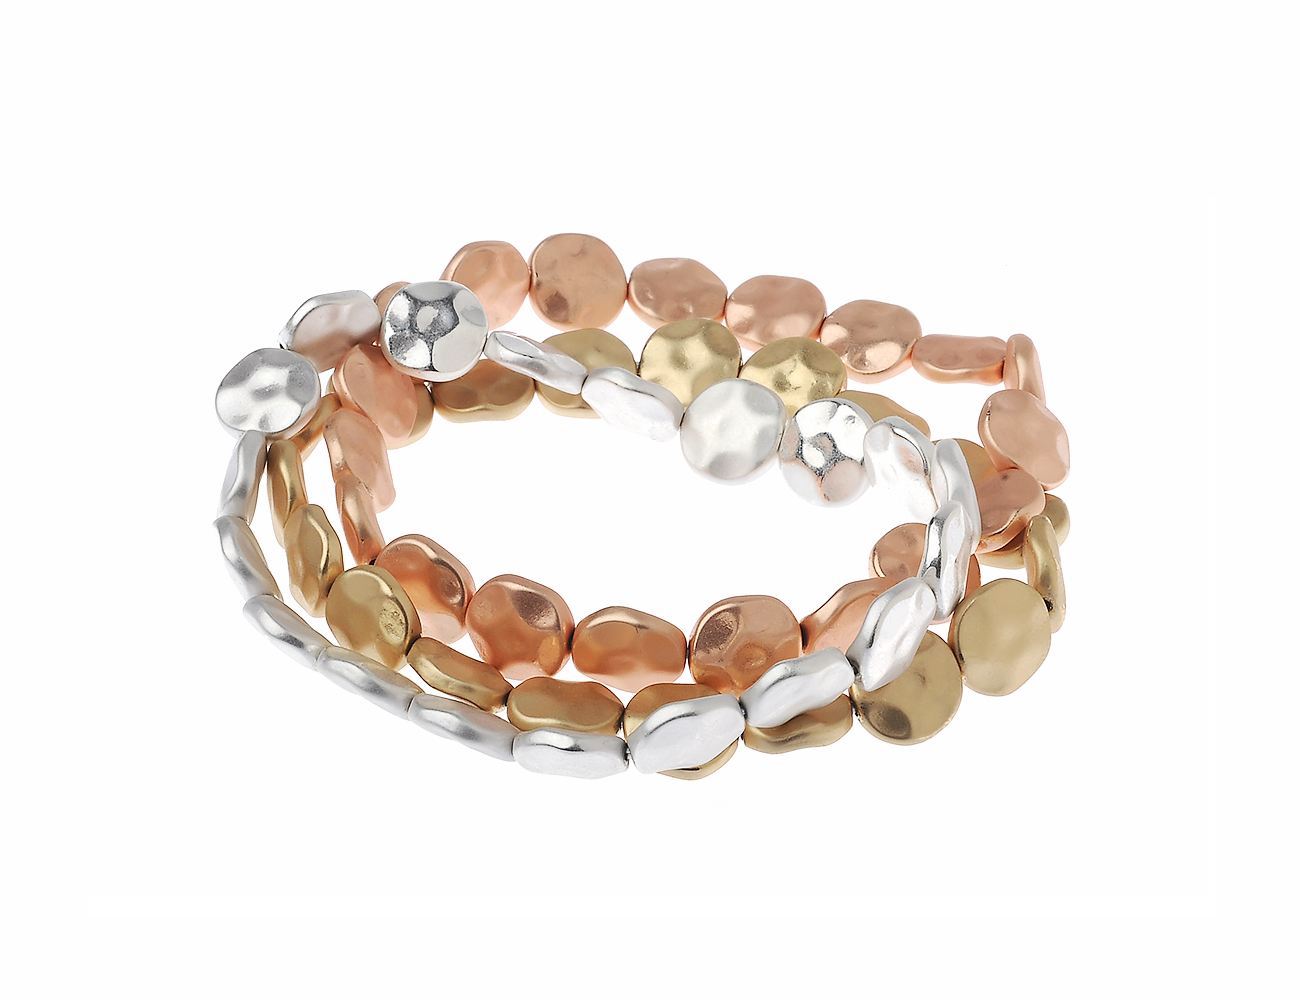 TRIPLE SET OF HAMMERED SILVER, GOLD AND ROSE GOLD COIN STRETCH BRACELETS